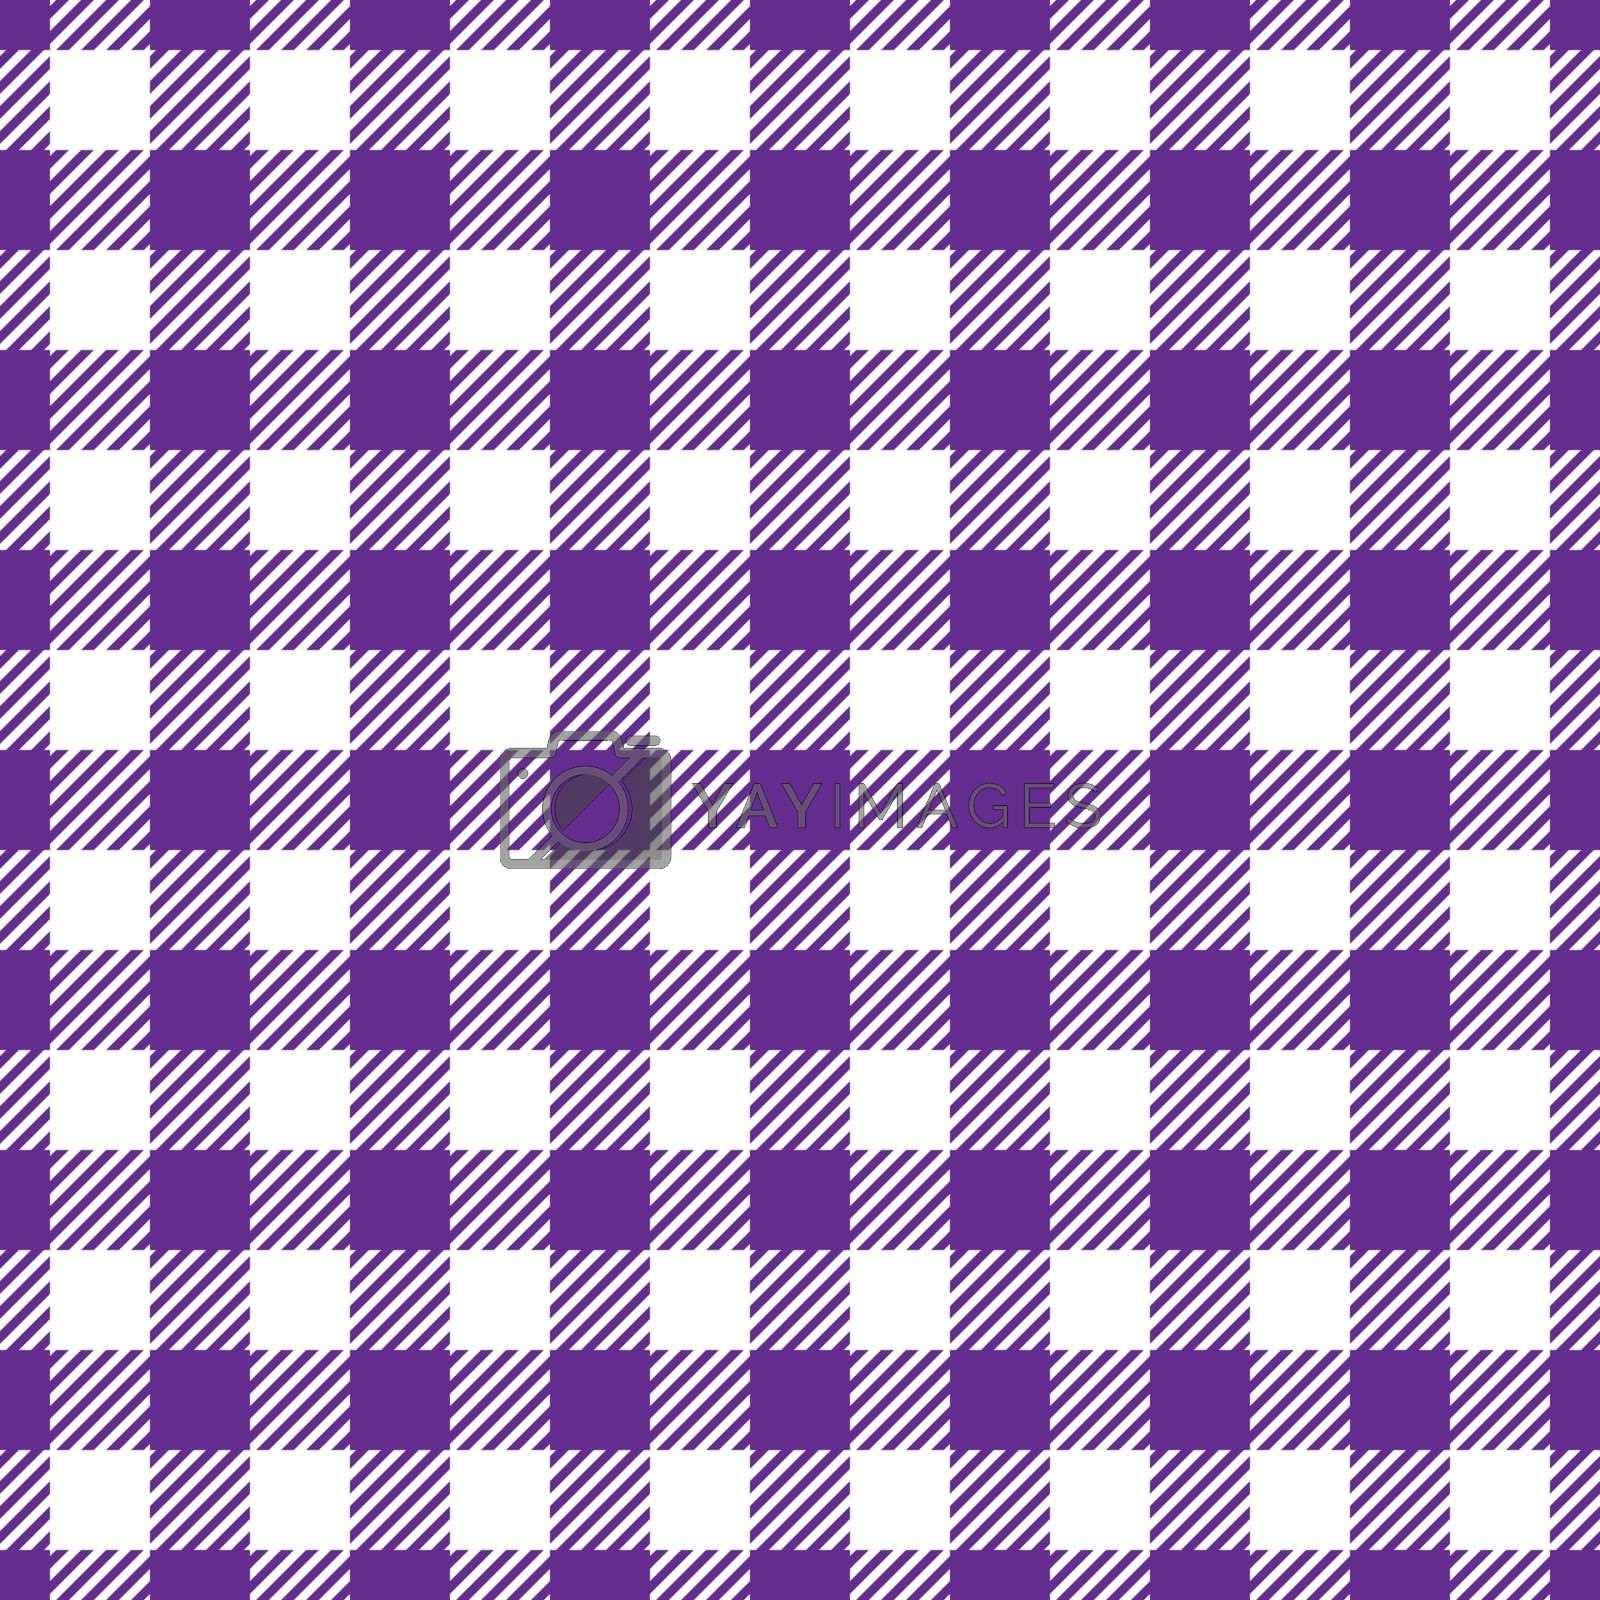 Seamless Violet White Traditional Gingham Pattern Fabric Texture